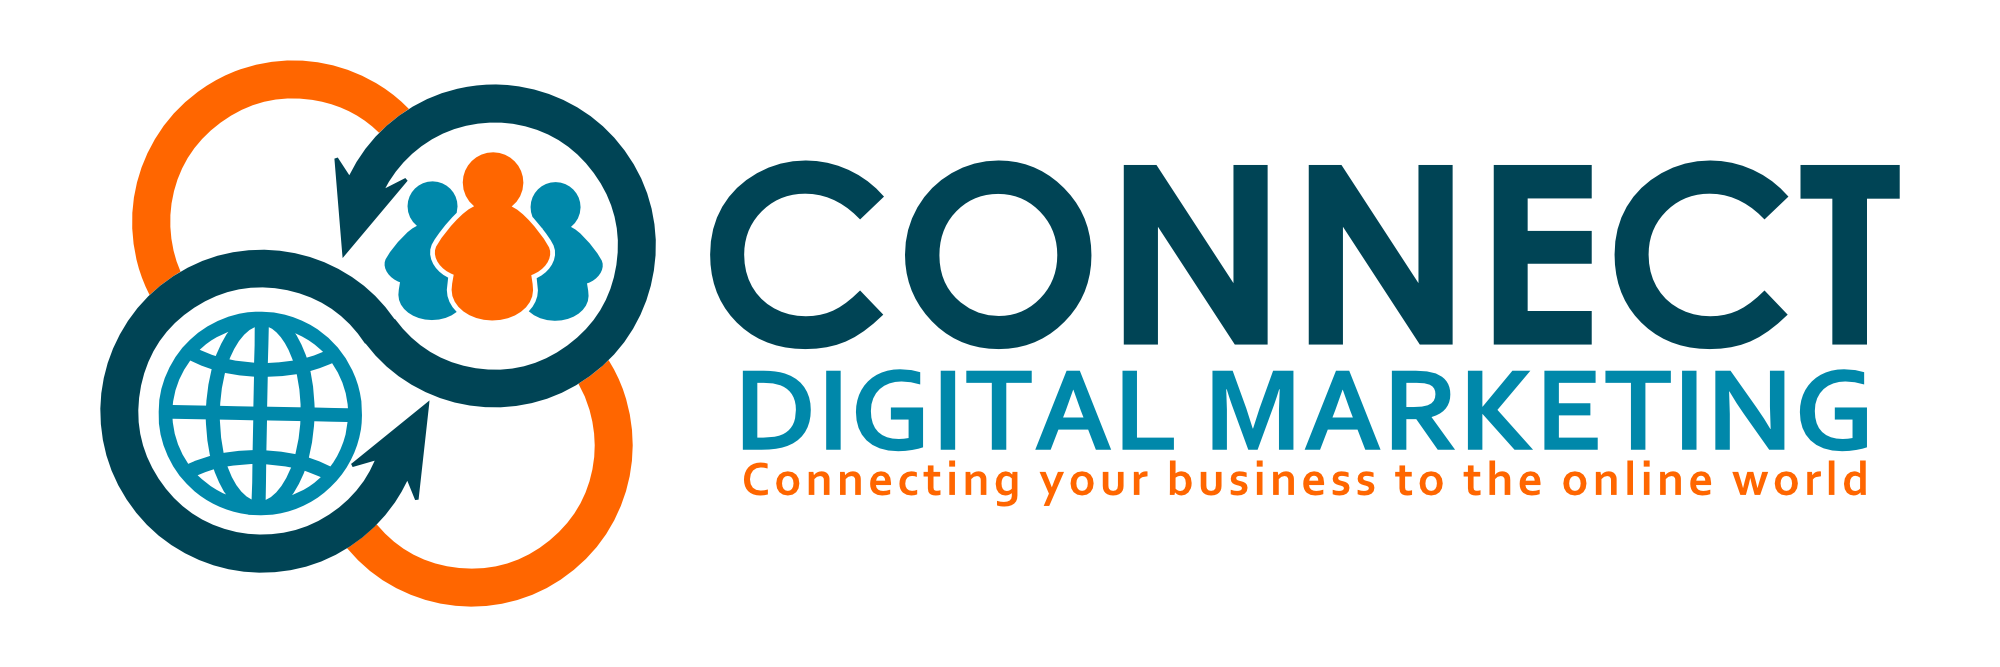 connecting with digital customers Orange business services is no longer just a network story  orange business services is connecting the digital dots for its customers.